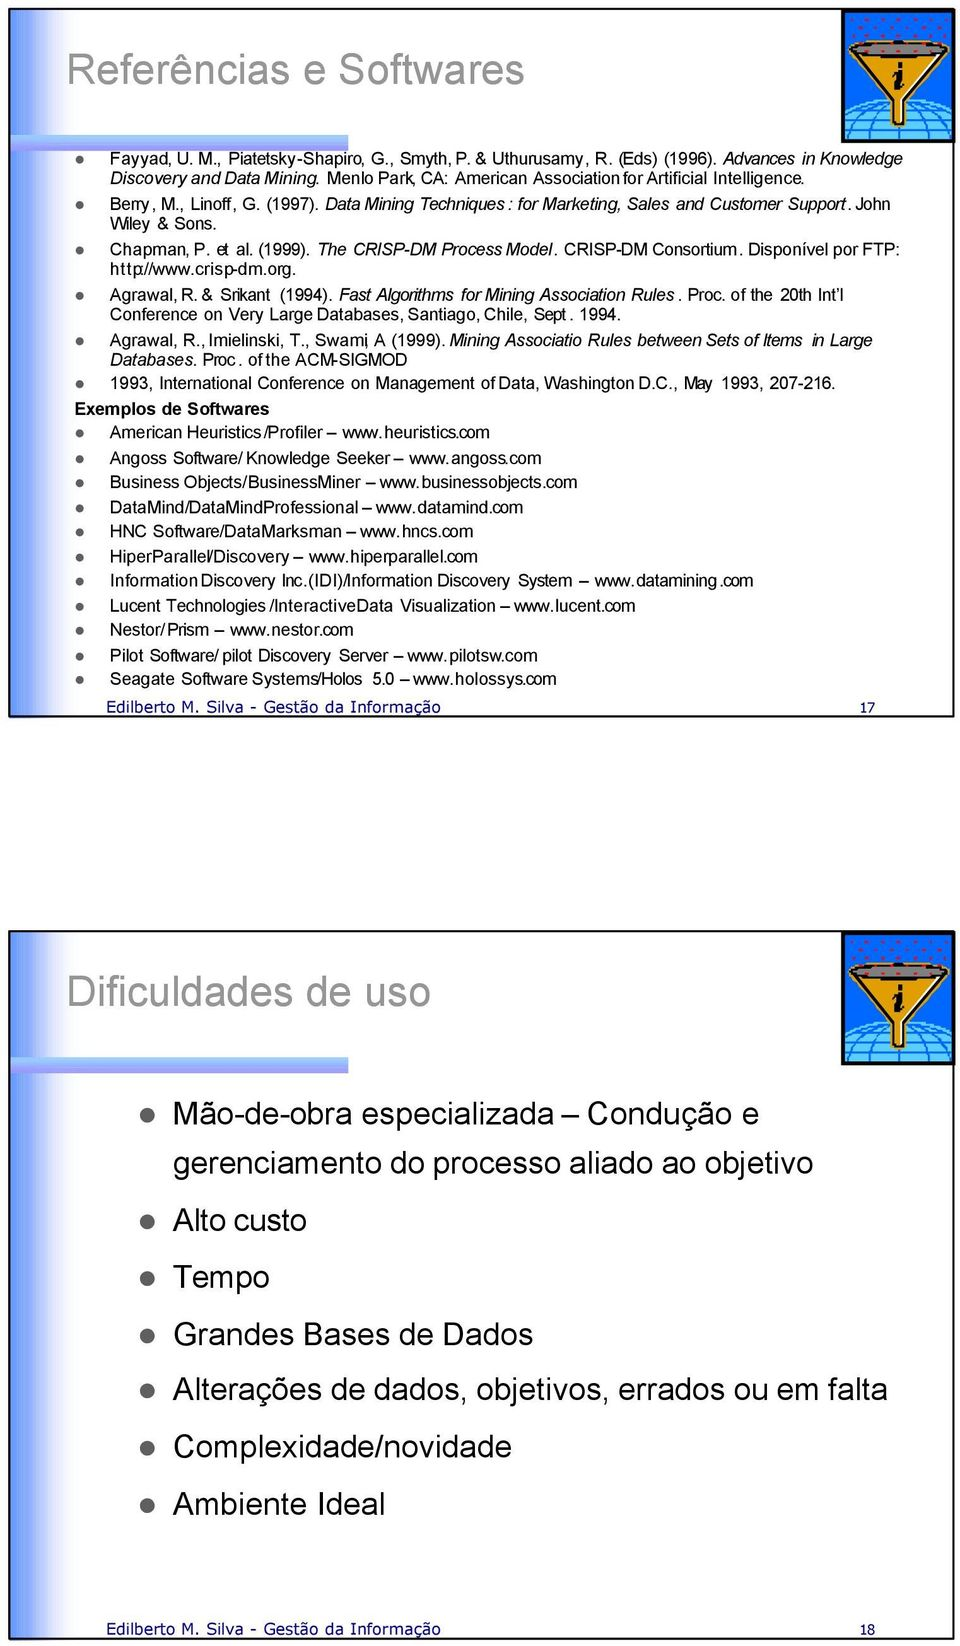 (1999). The CRISP-DM Process Model. CRISP-DM Consortium. Disponível por FTP: http://www.crisp-dm.org. Agrawal, R. & Srikant (1994). Fast Algorithms for Mining Association Rules. Proc. of the 20th Int l Conference on Very Large Databases, Santiago, Chile, Sept.